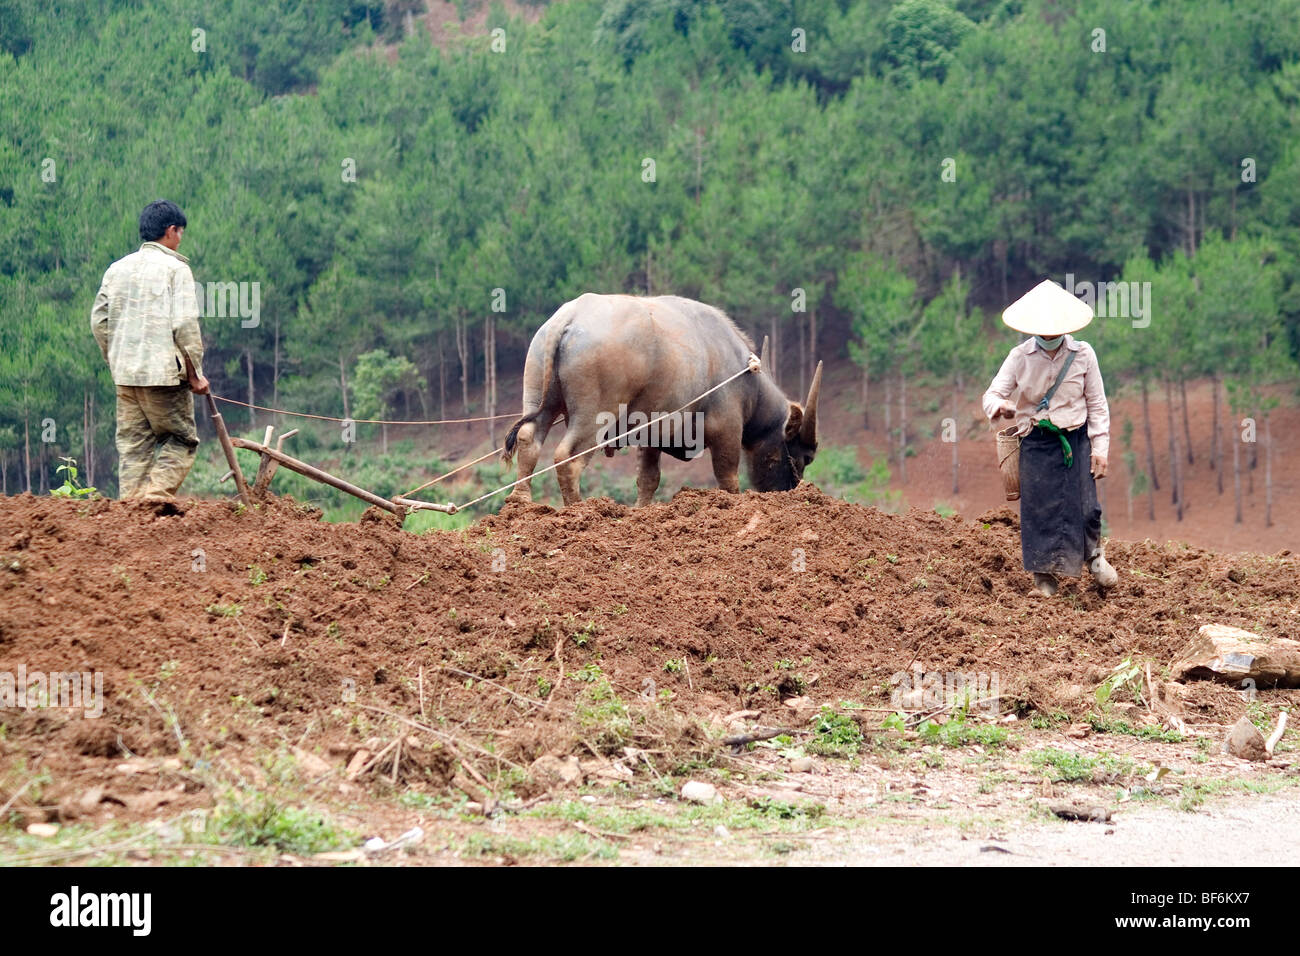 Vietnamese farmers and buffalo ploughing the hills of North Vietnam. - Stock Image